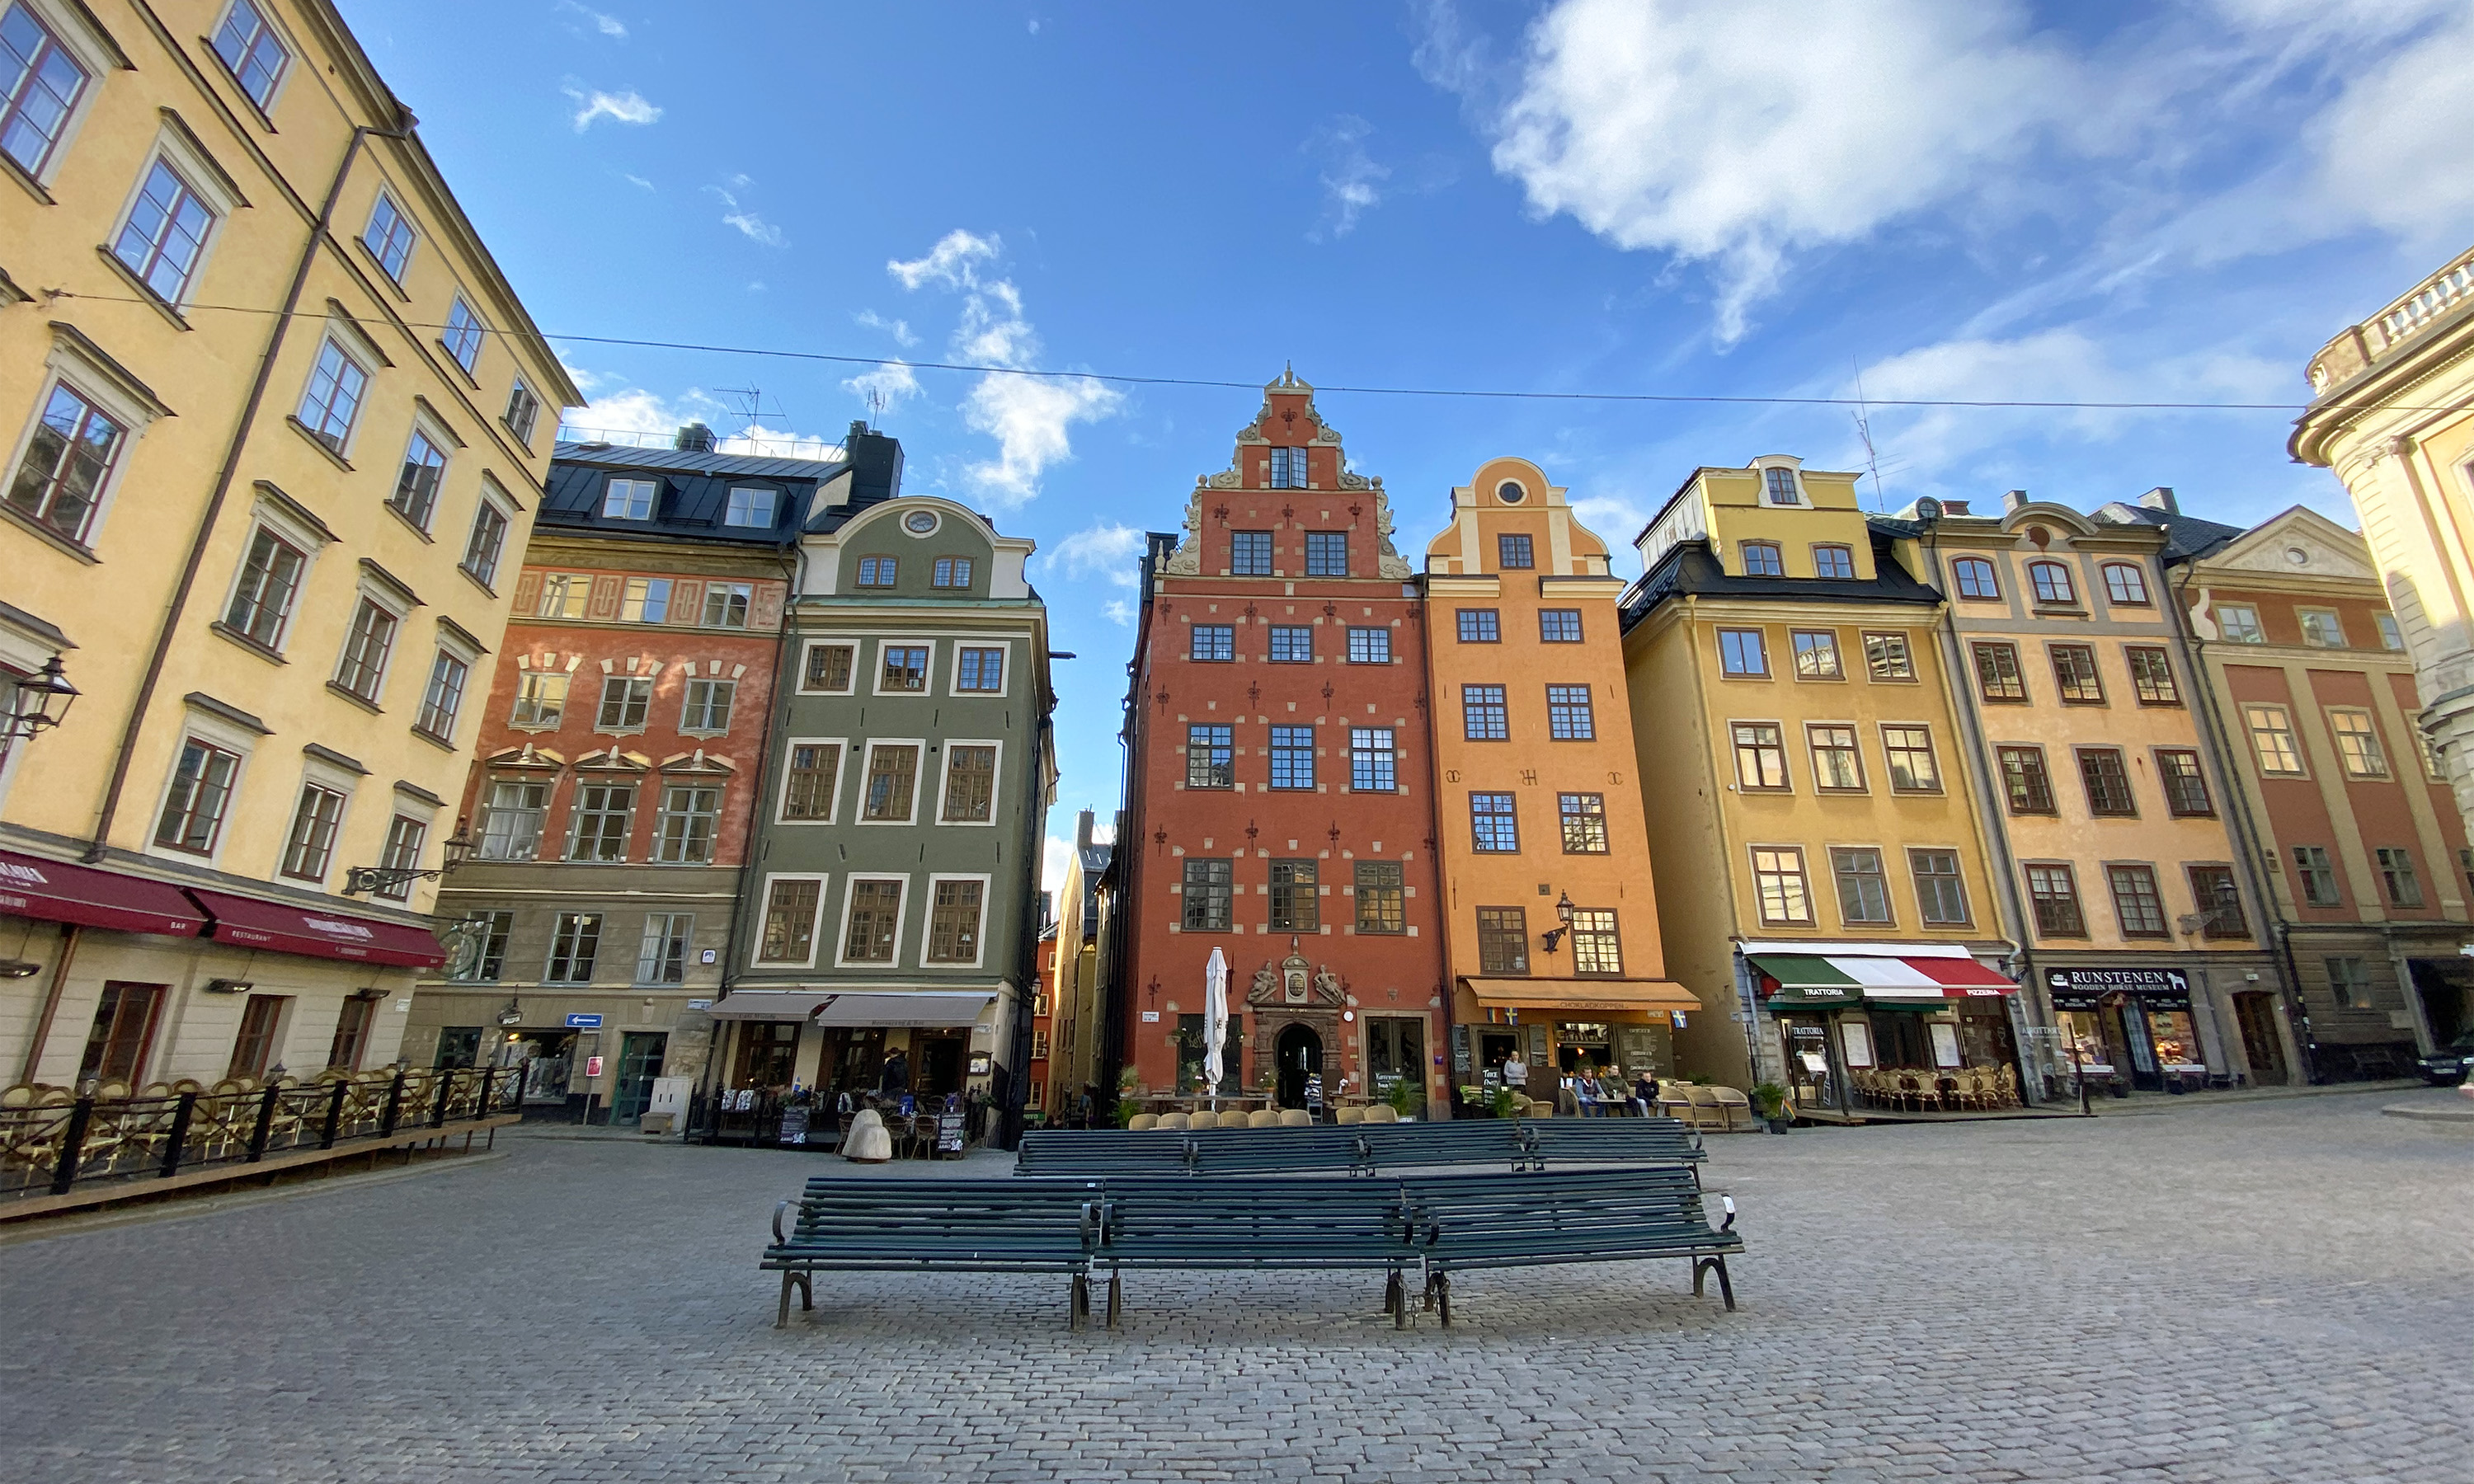 The Old Town known as Gamla Stan in Stockholm